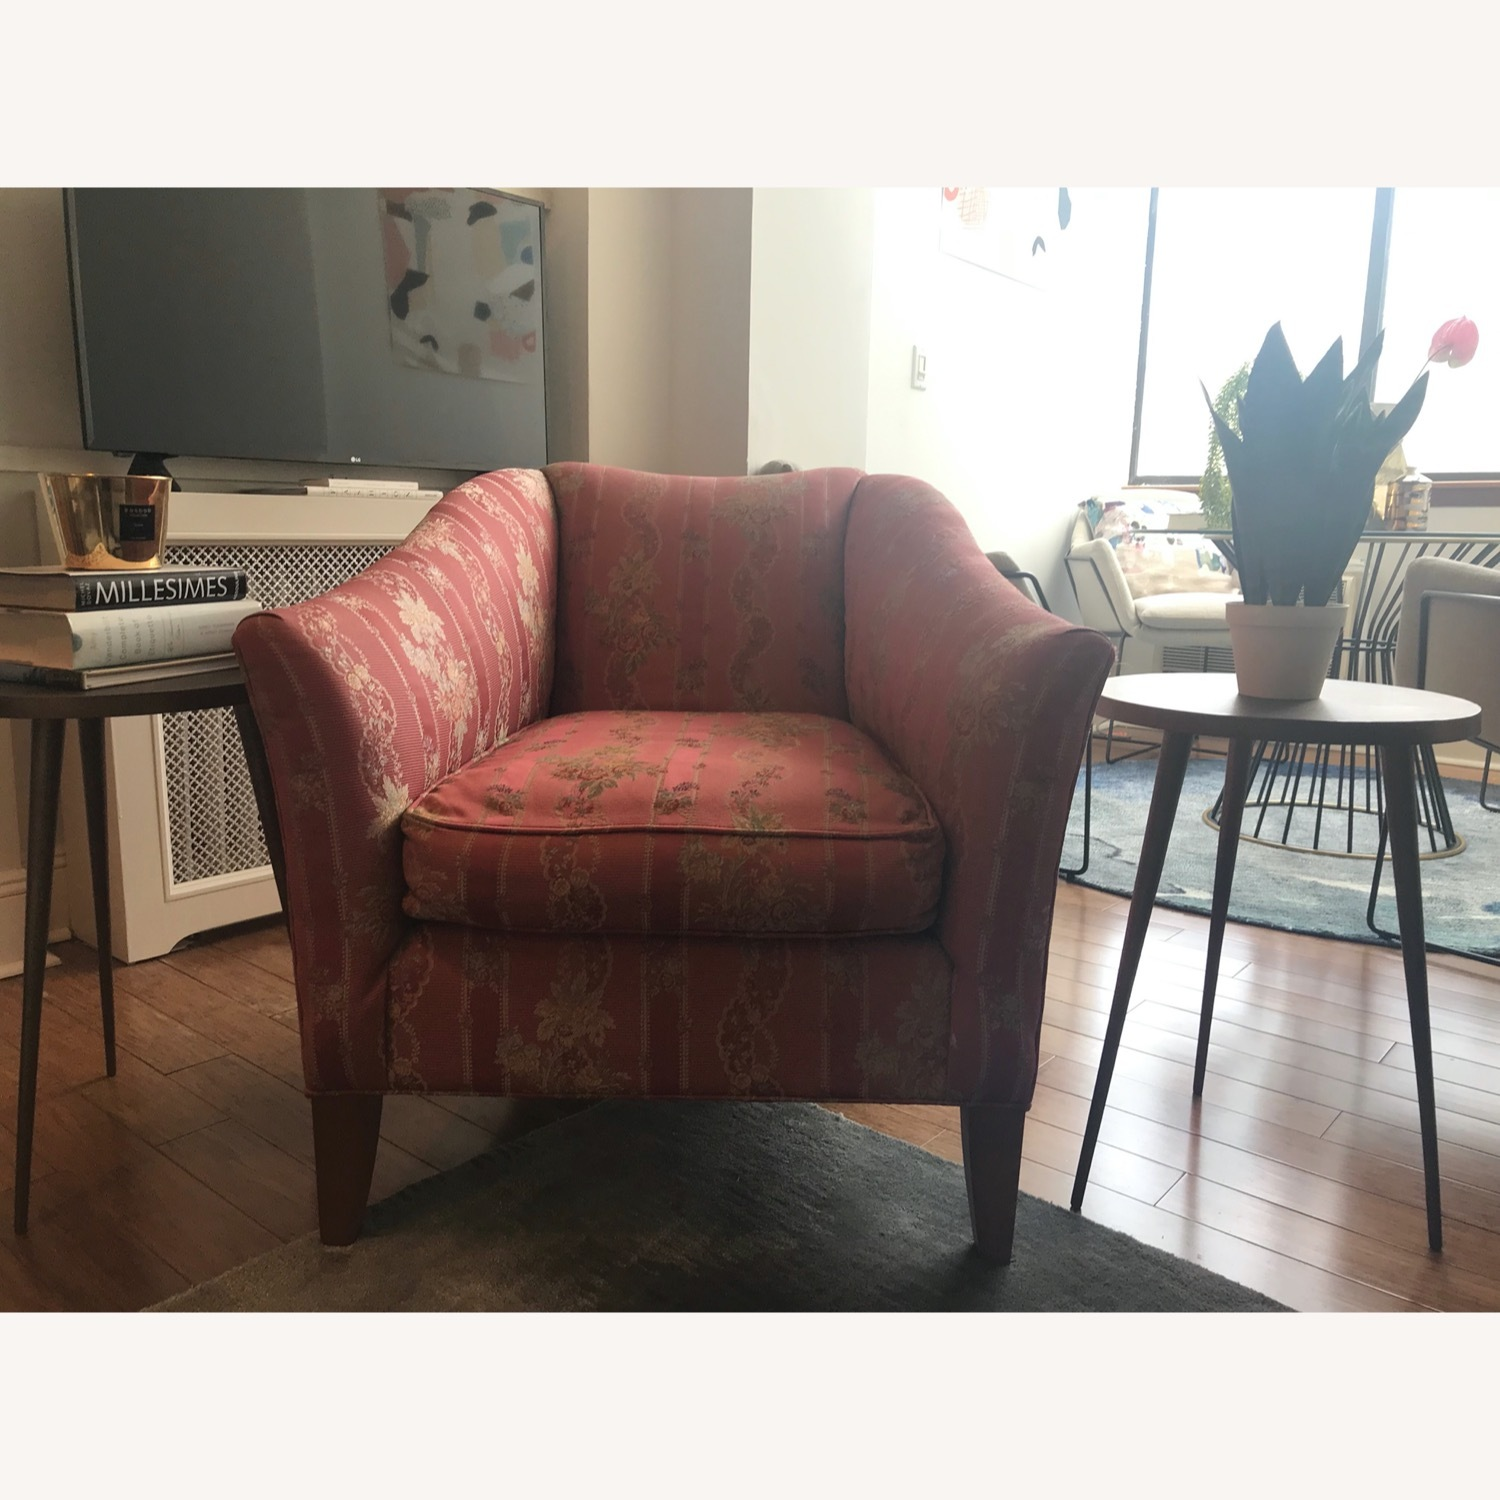 Ethan Allen Rose Accent Arm Chair - image-1